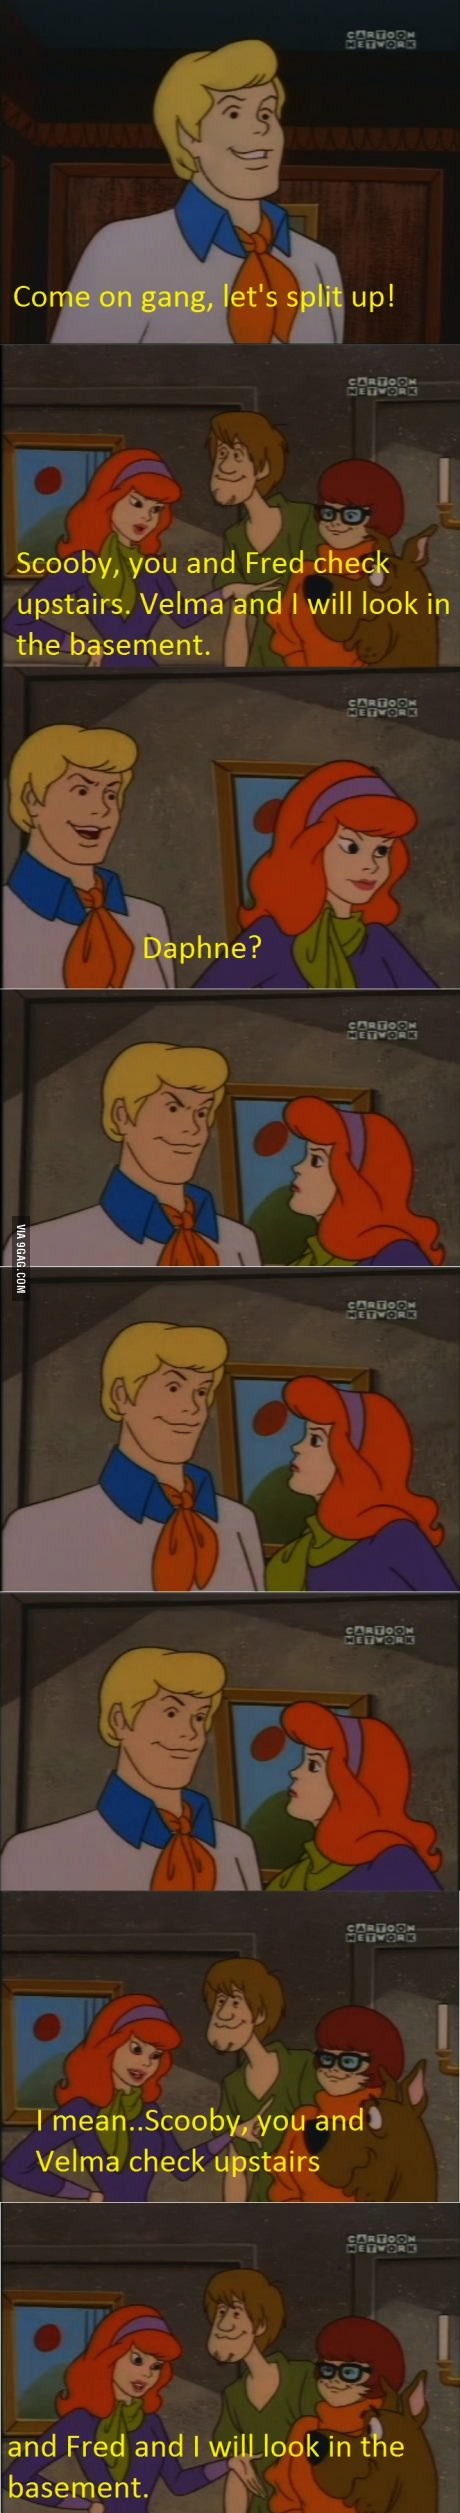 scooby doo ruined